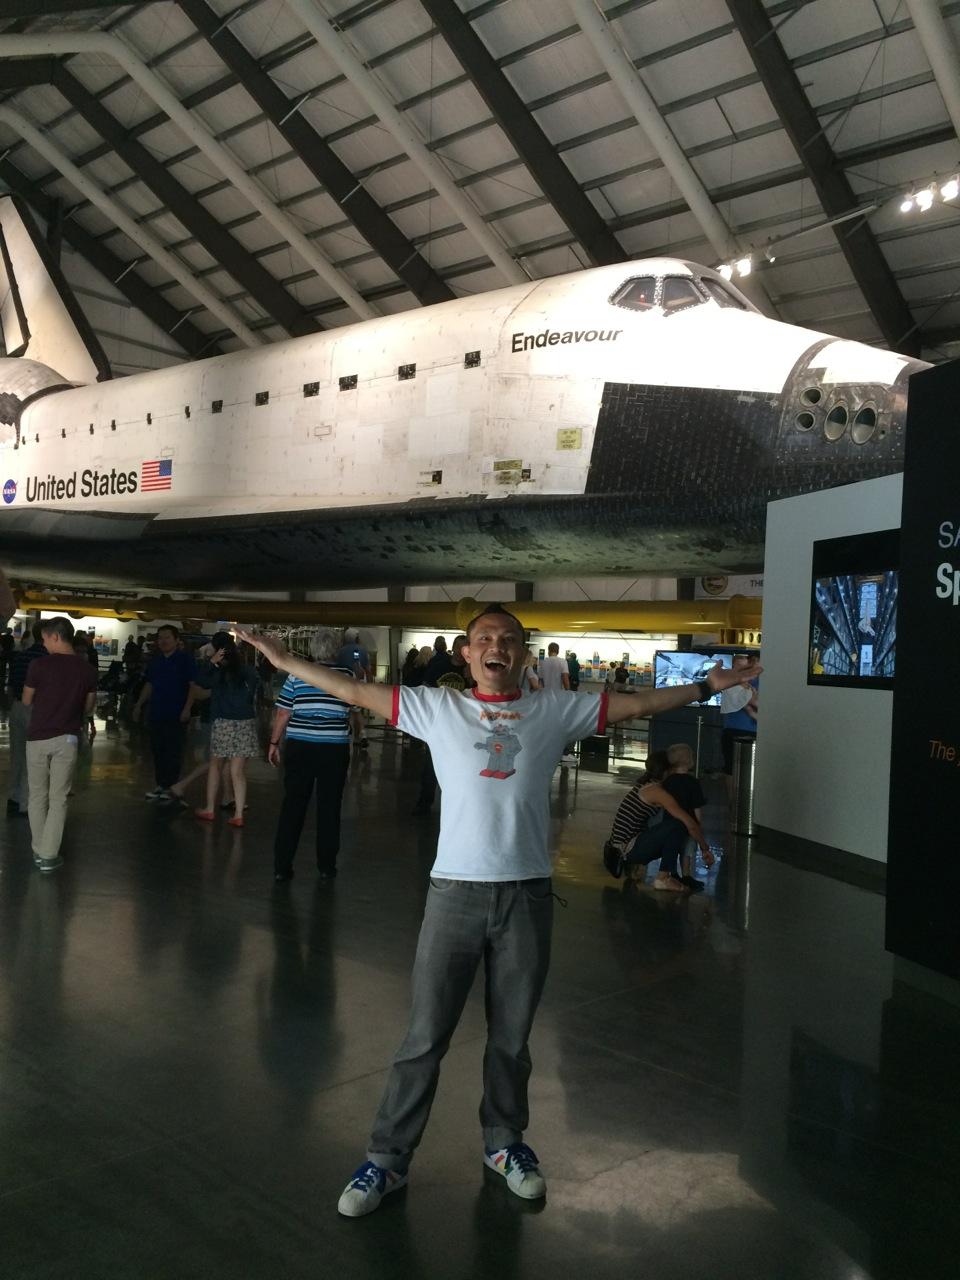 Giant Space Shuttle is Giant